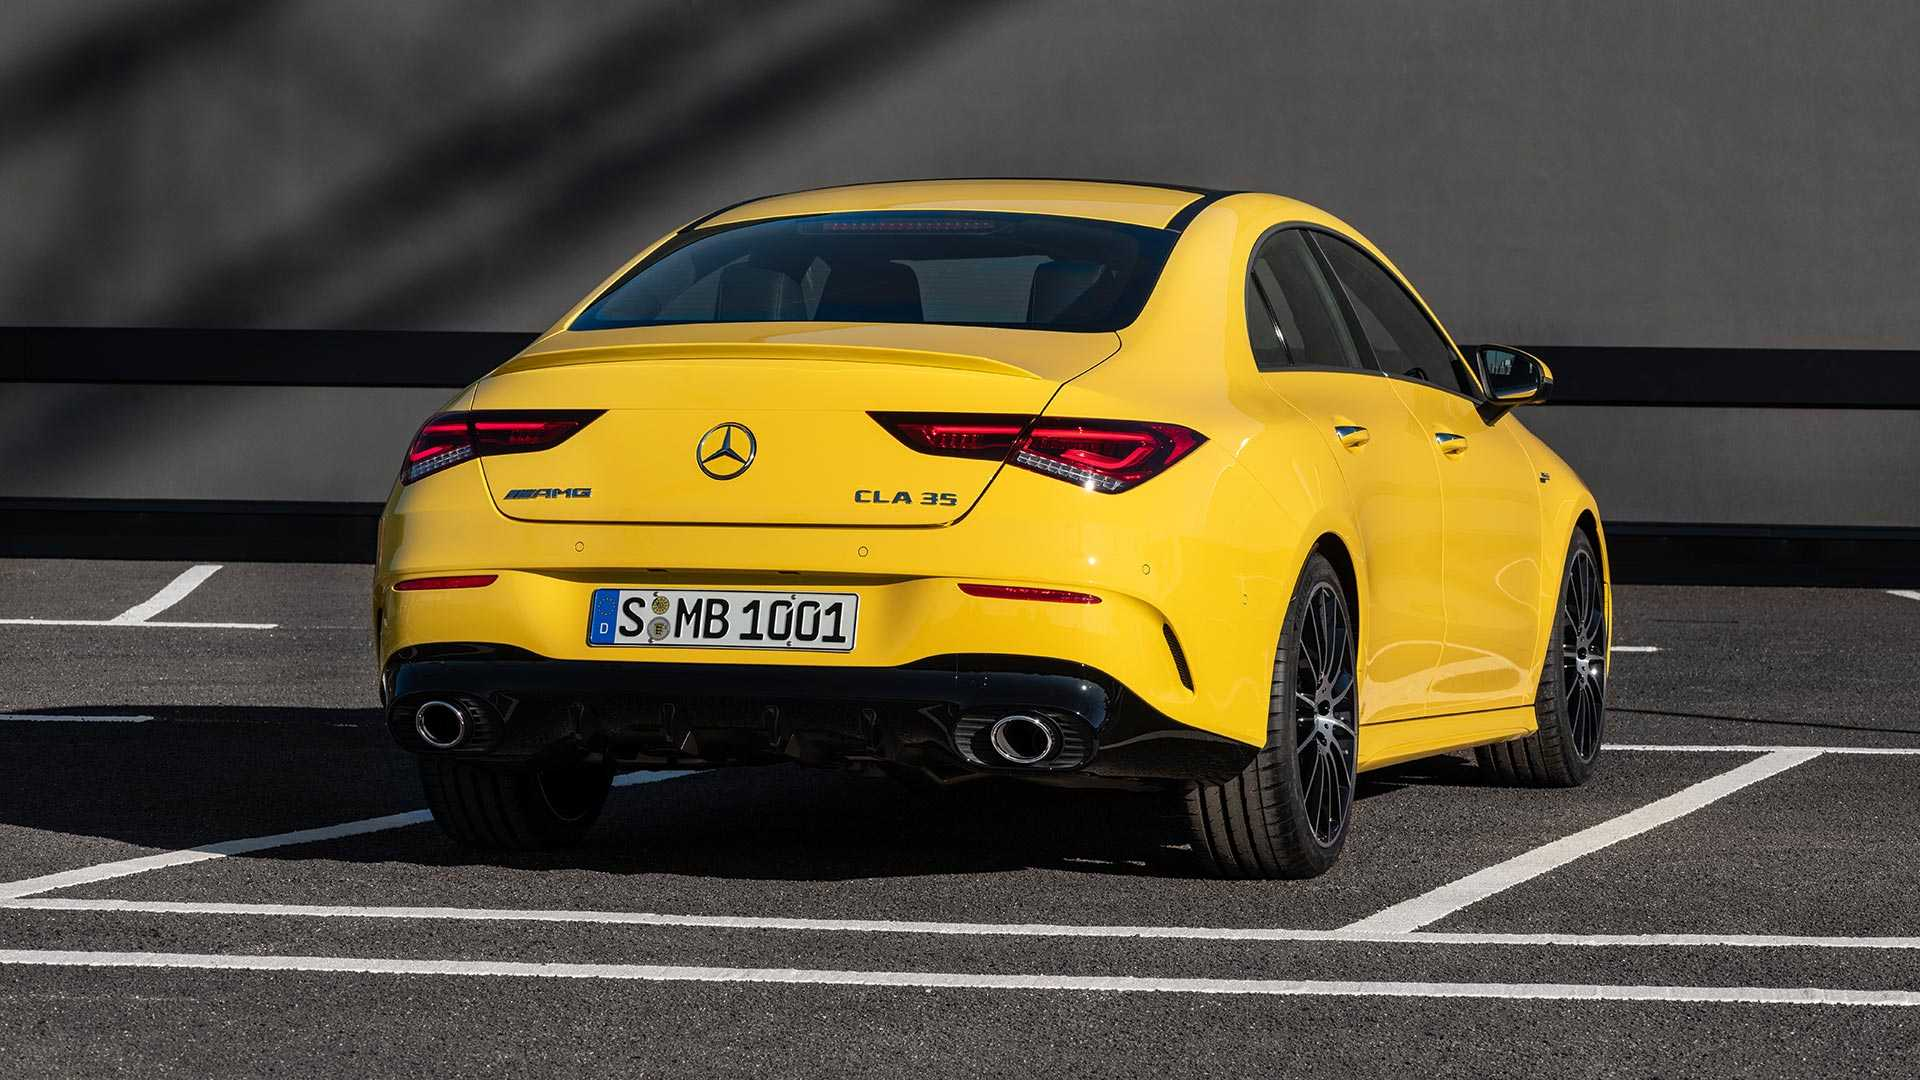 2020-mercedes-amg-cla-35-coupe (17)